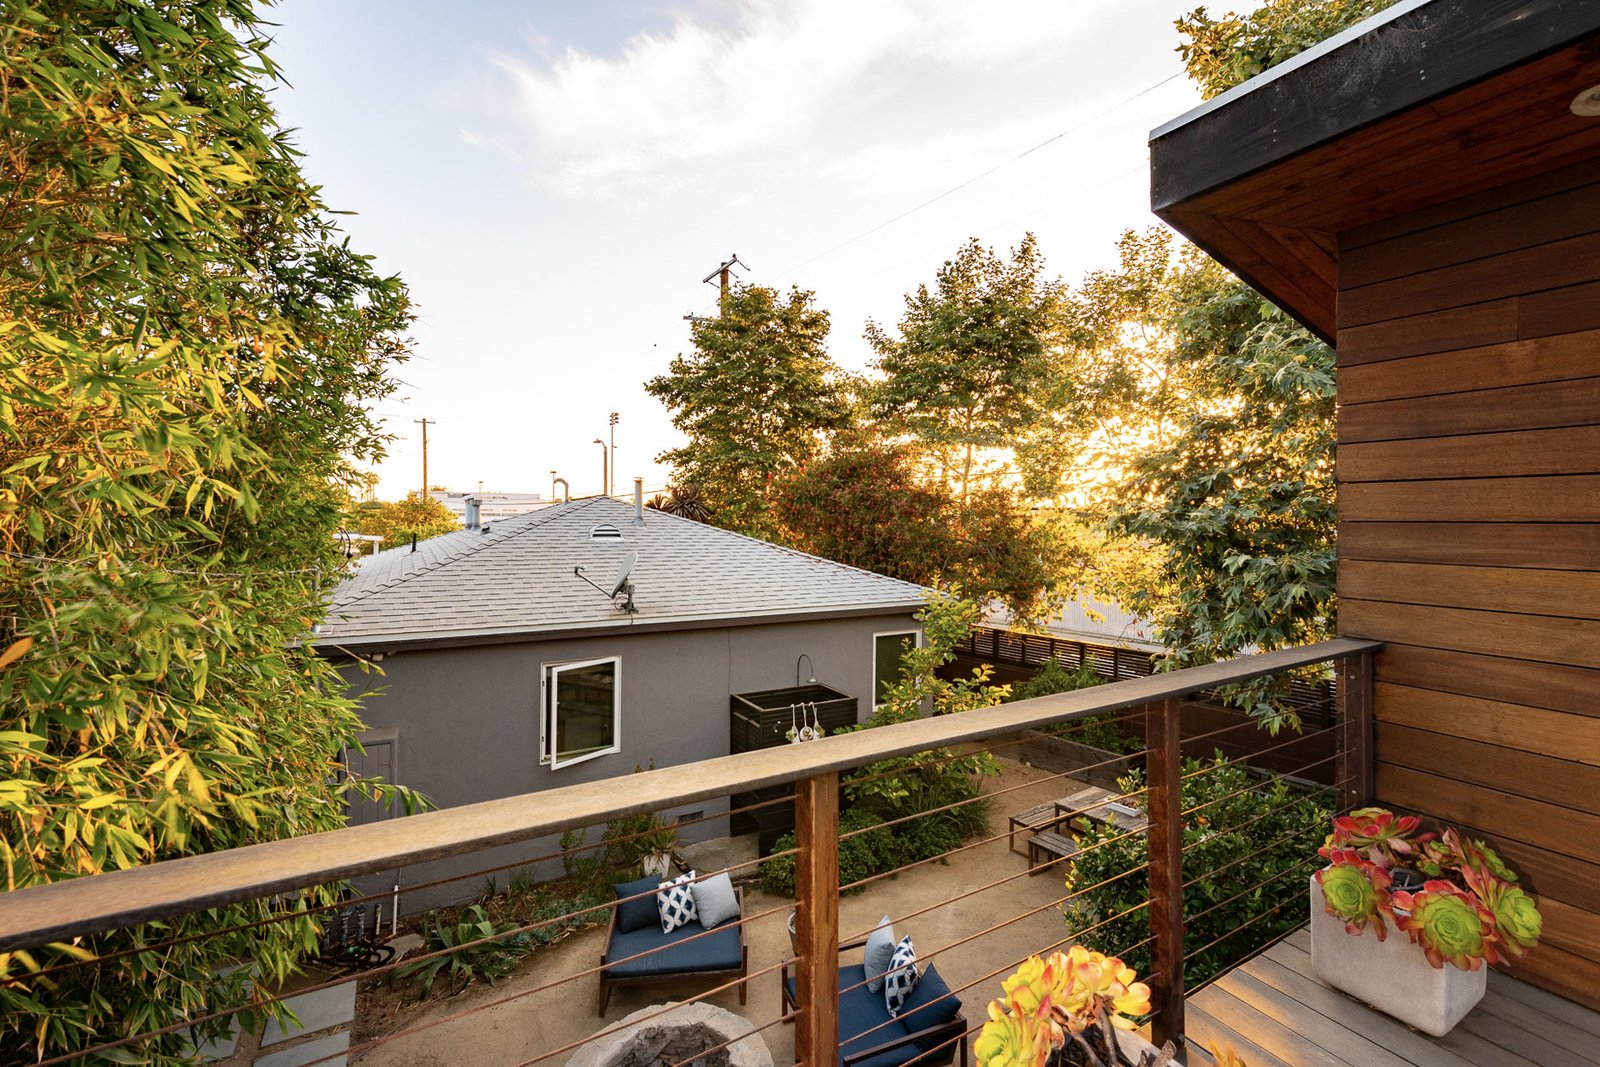 """A view from the studio balcony shows the front bungalow and central patio area. Creative director Matt Titone's architect brother Sam and interior designer wife Courtney <span style=""""font-family: Theinhardt, -apple-system, BlinkMacSystemFont, &quot;Segoe UI&quot;, Roboto, Oxygen-Sans, Ubuntu, Cantarell, &quot;Helvetica Neue&quot;, sans-serif;"""">Husk transformed the garage into an inviting guest/work space several years ago.</span>  Photo 1 of 17 in The """"Surf Shacks"""" Author Lists His Venice Bungalow and Backyard Guesthouse for $1.6M"""